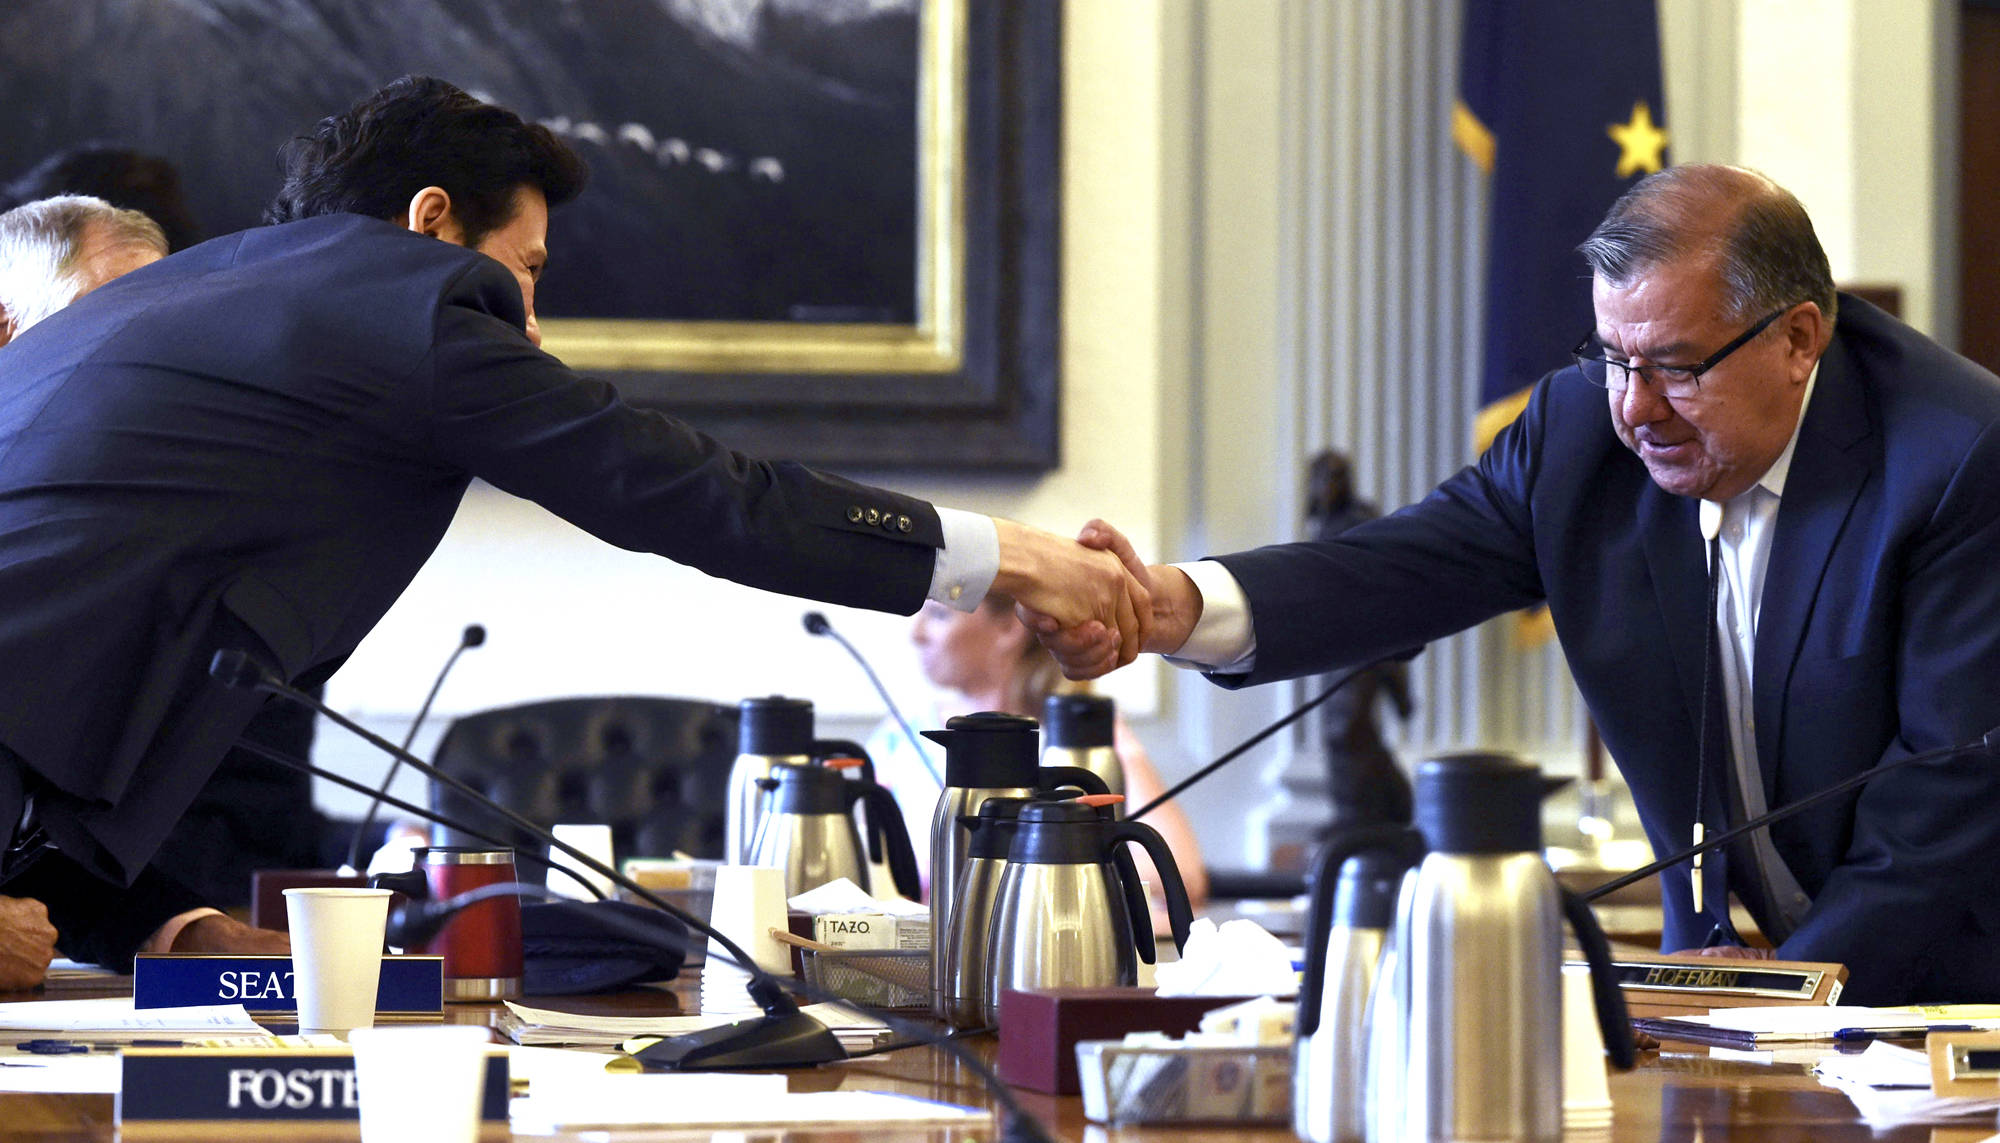 Rep. Neal Foster, D-Nome, left, shakes hands with Sen. Lyman Hoffman, D-Bethel, after an agreement is made on the capital budget in conference committee at the Capitol on Thursday, July 27, 2017. (Michael Penn | Juneau Empire)